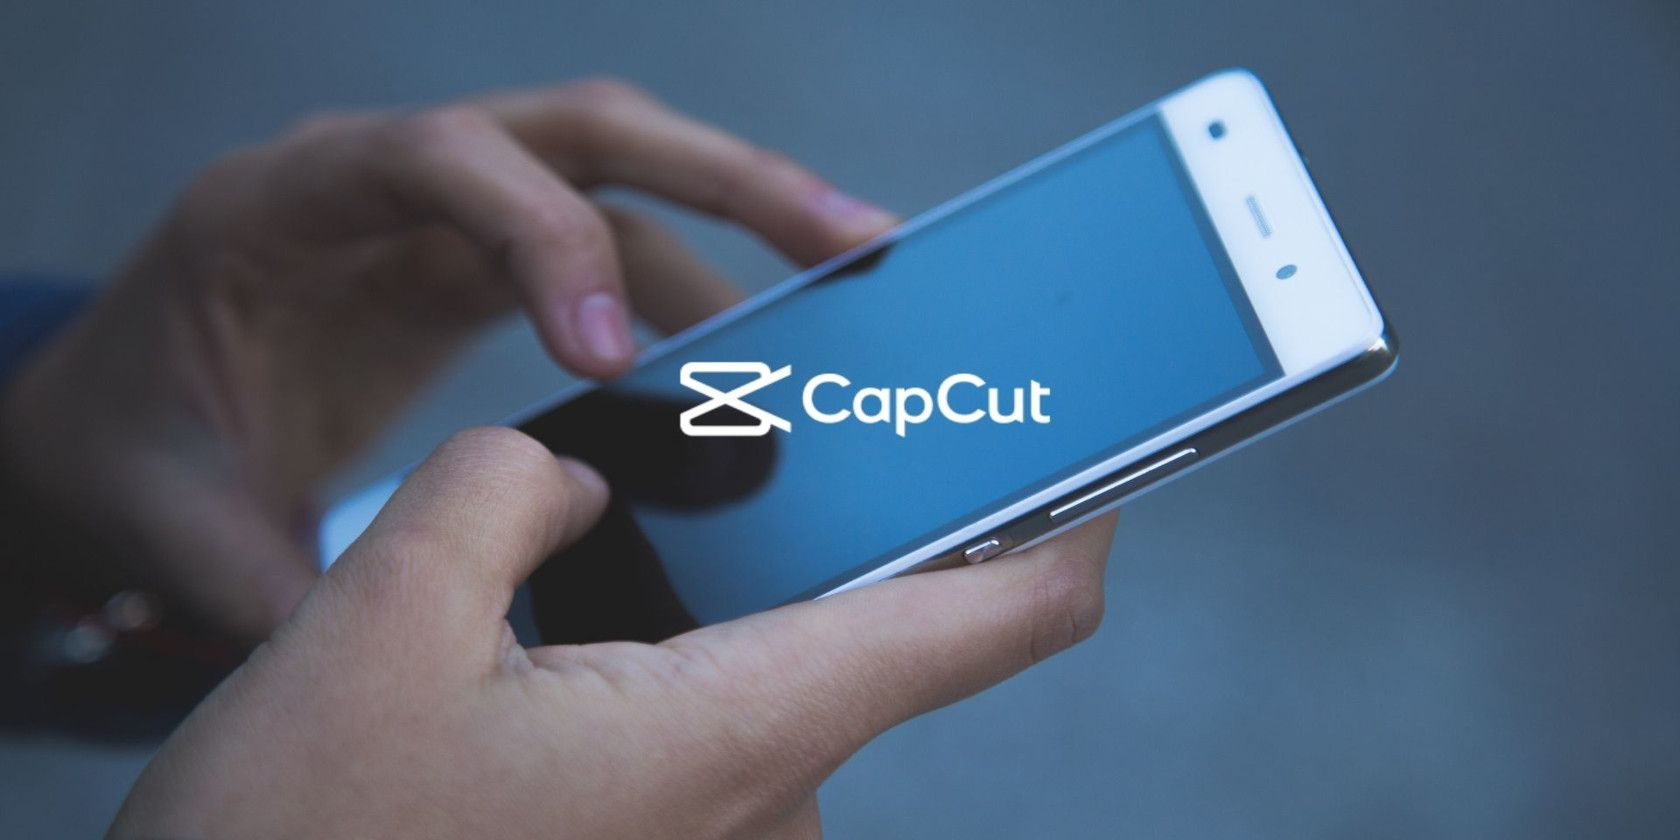 Is the CapCut App Safe to Use?